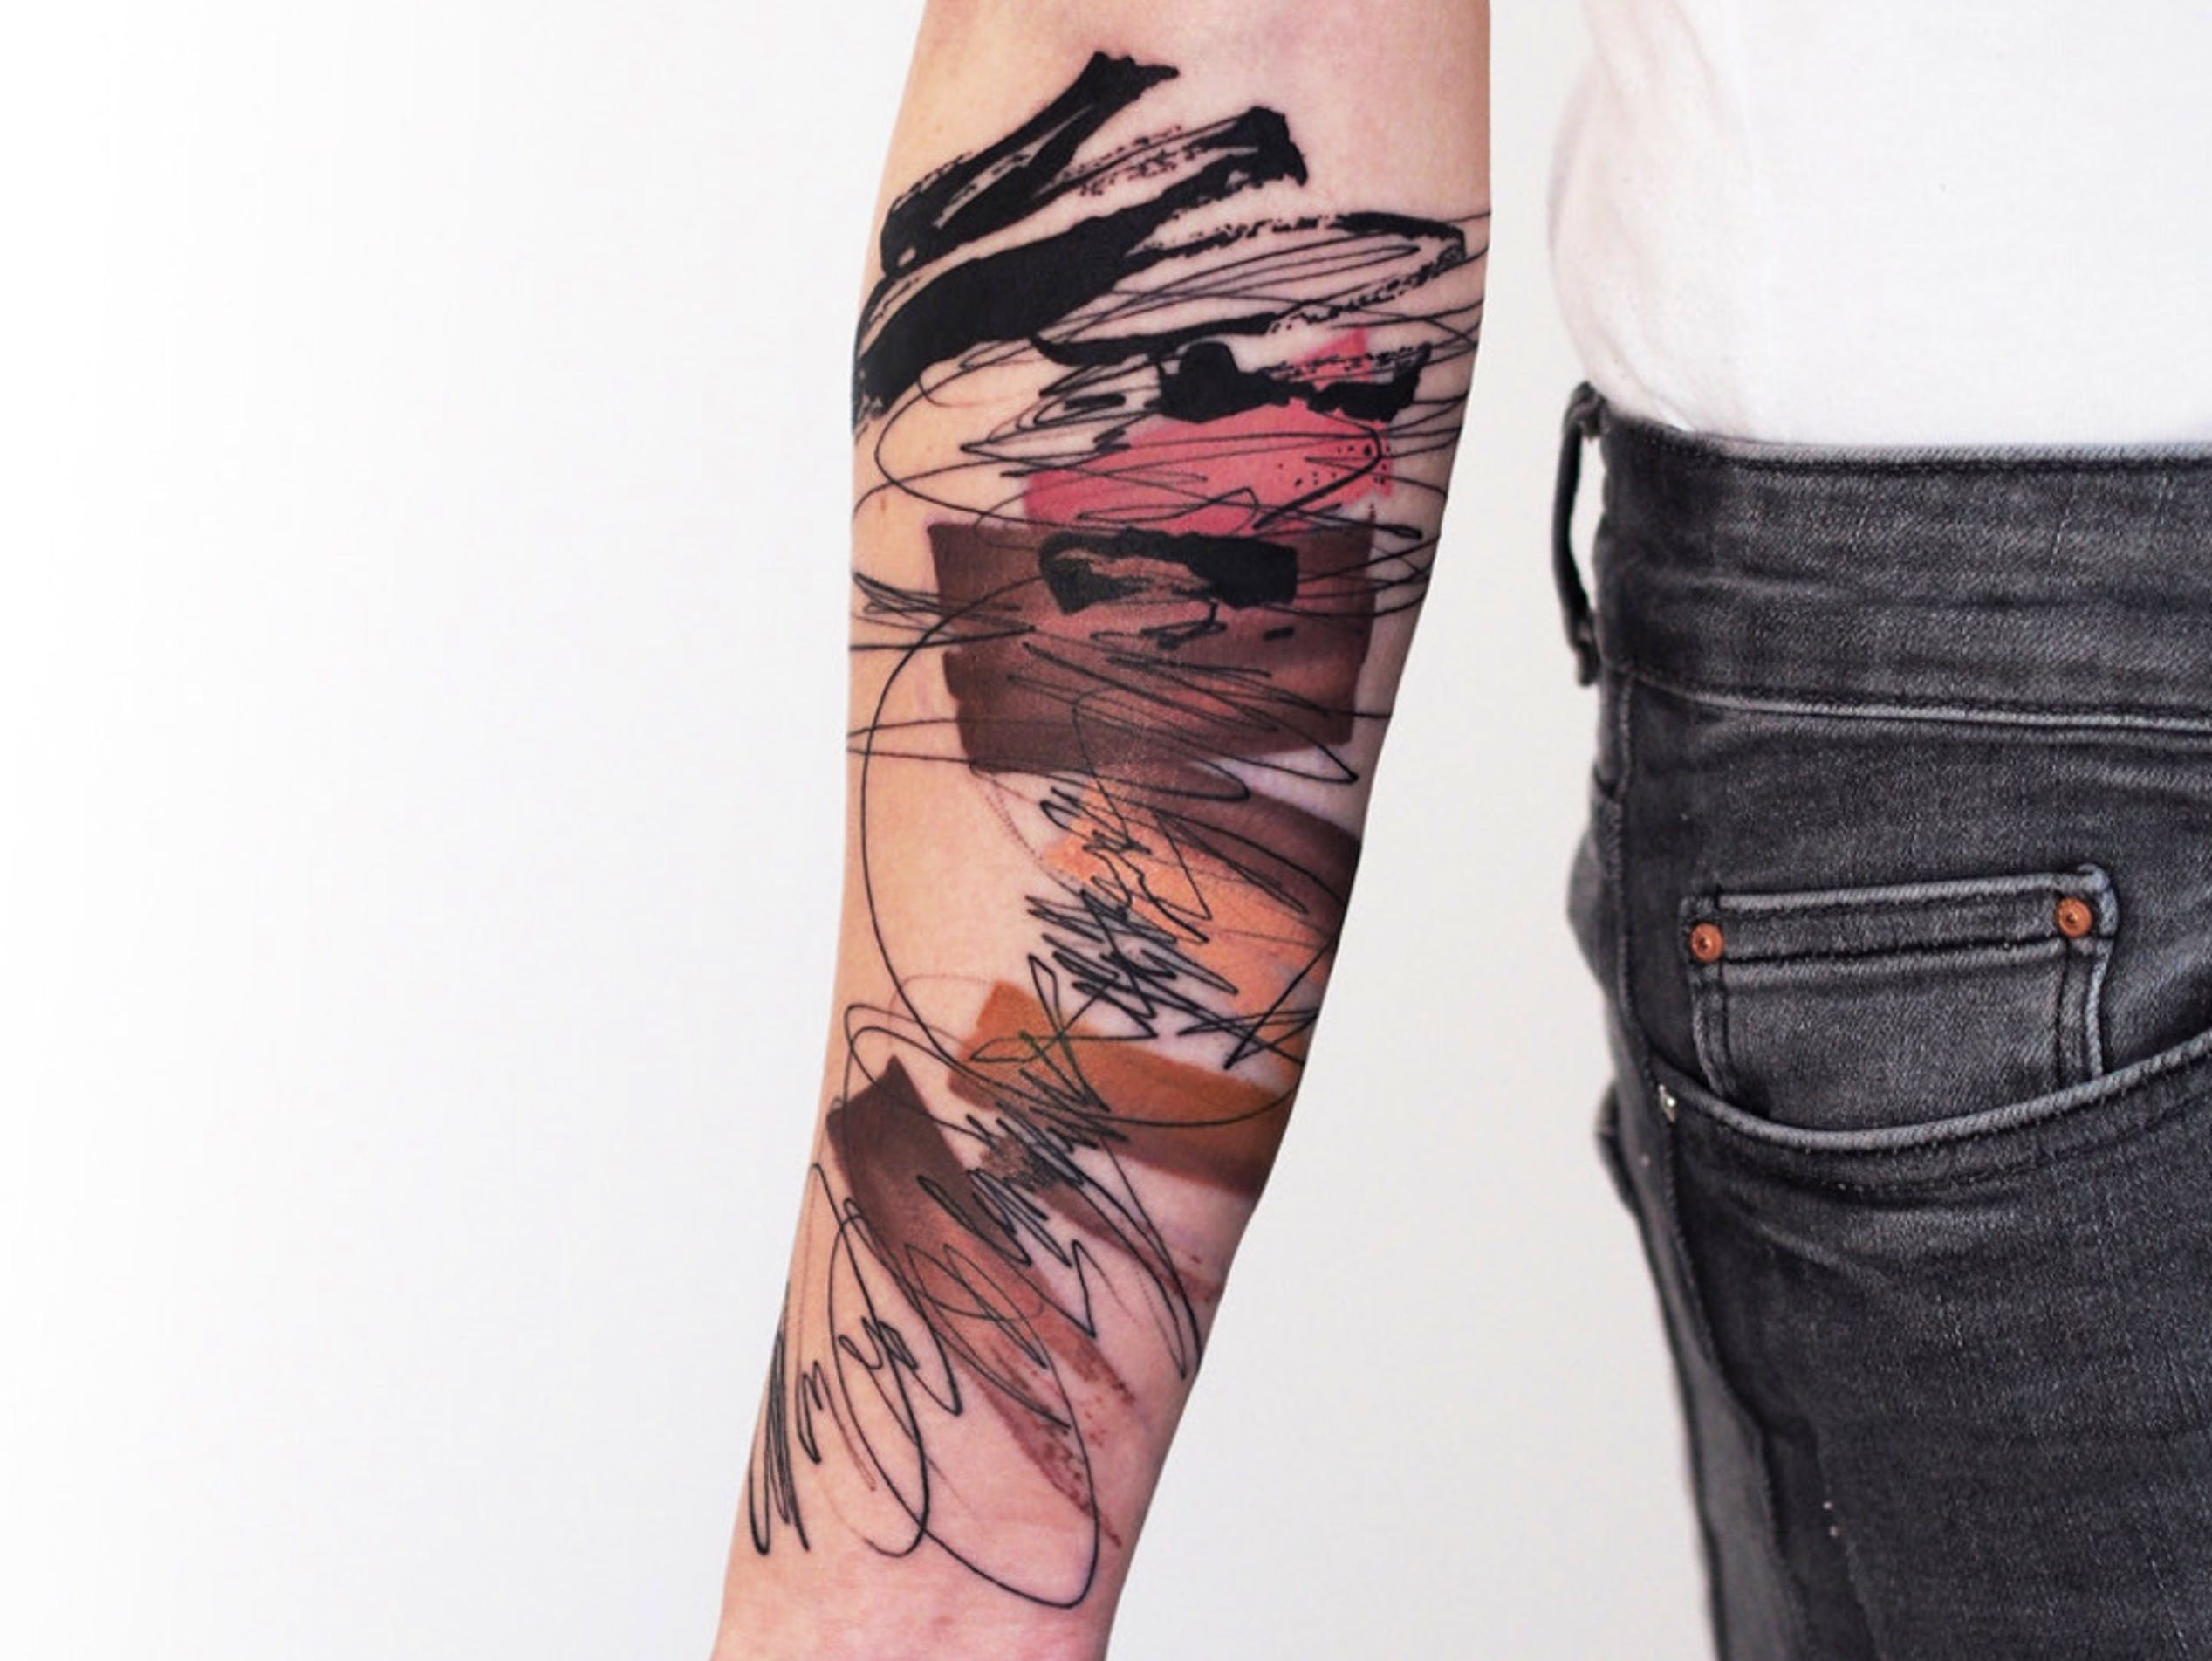 Artist Julia Rehme translates fine art into tattoos at Studio Noïa in Berlin.